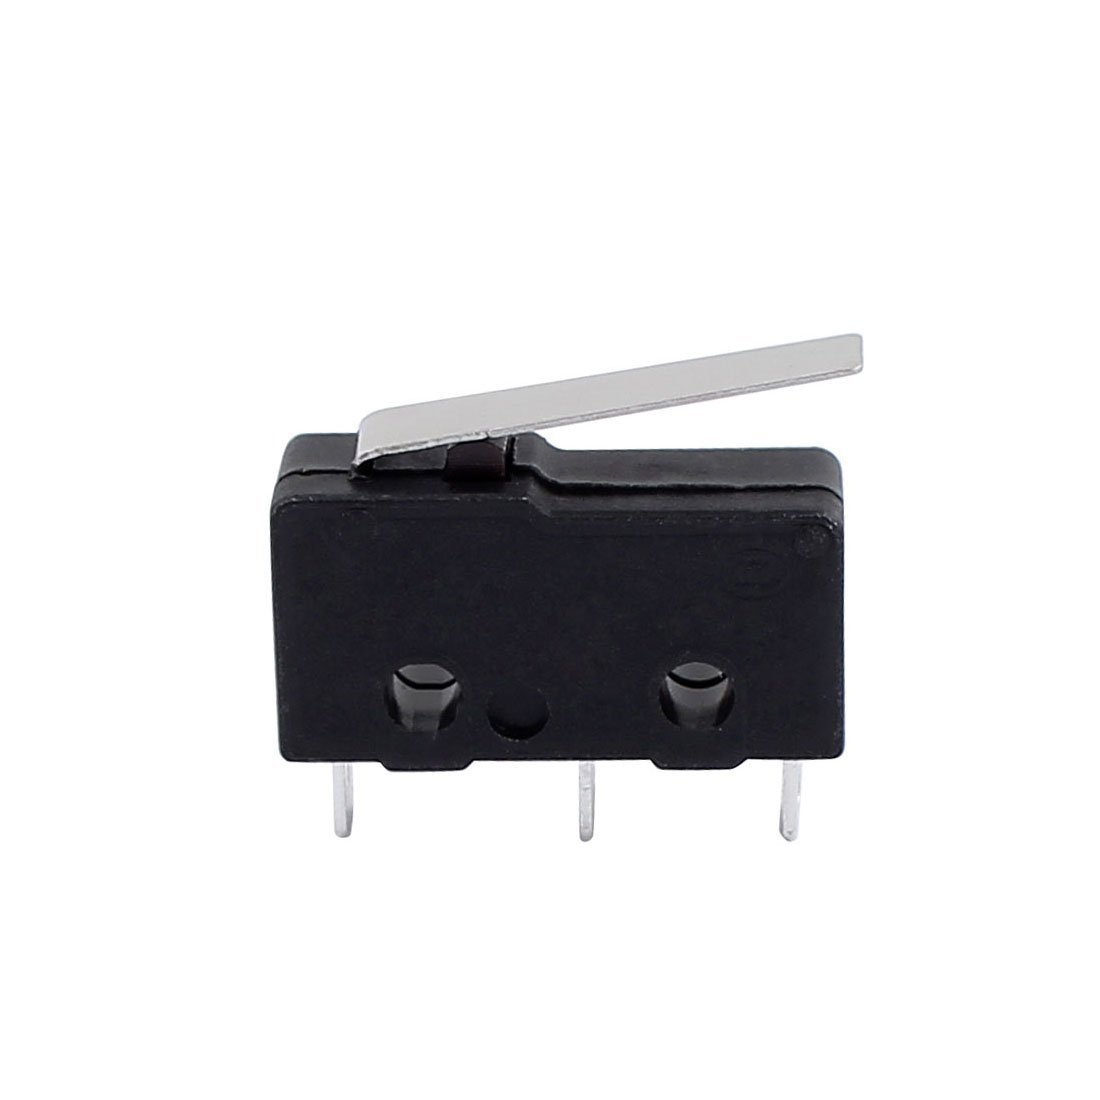 Pack of 10 Uxcell a16121600ux1027 AC250//125V 5 Amp 3 Terminals Momentary 22 mm Lever Arm Micro Switch Black KW12-6